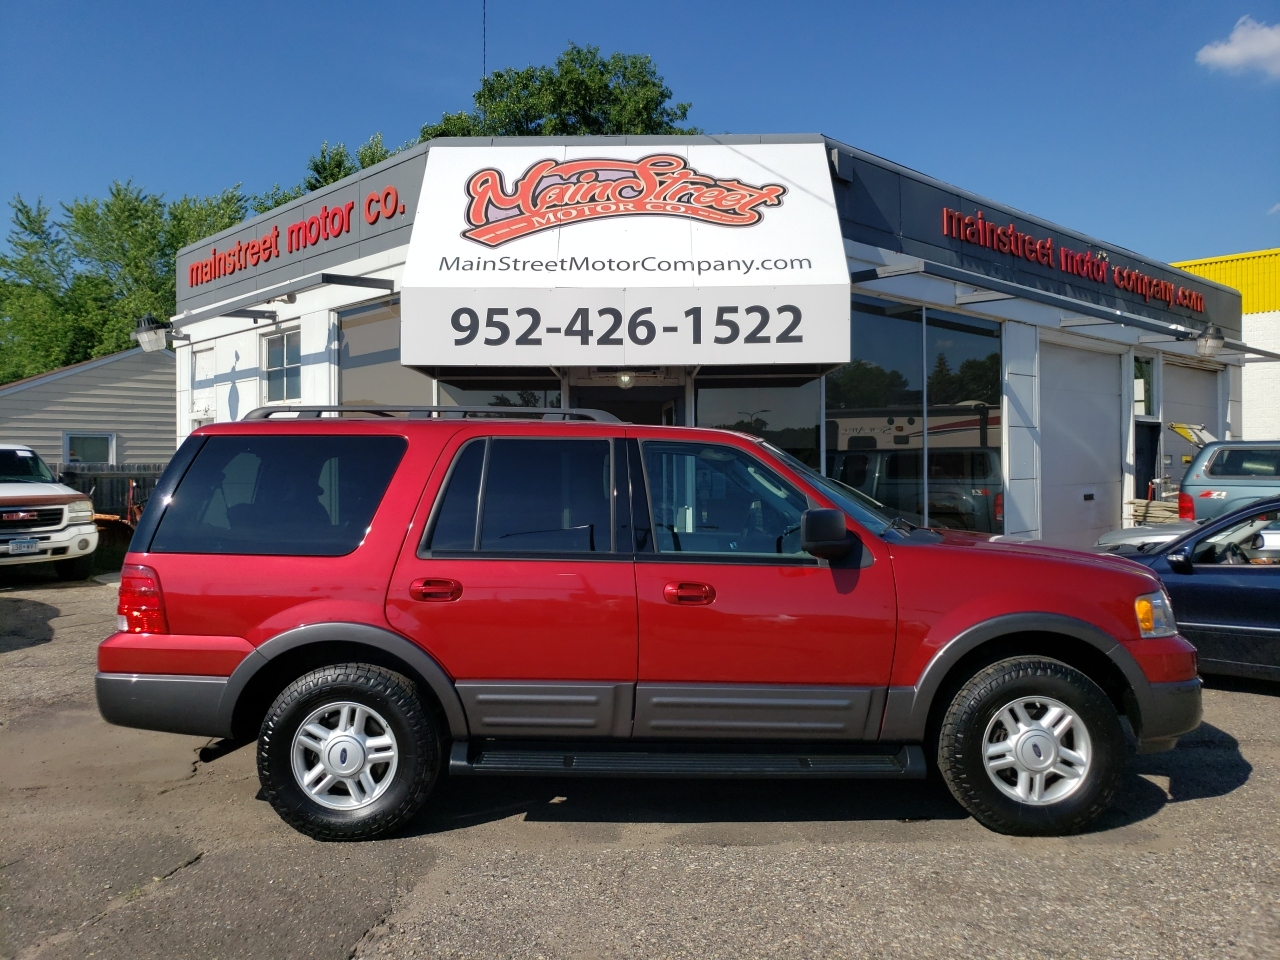 2006 Ford Expedition 4WD 4dr XLT